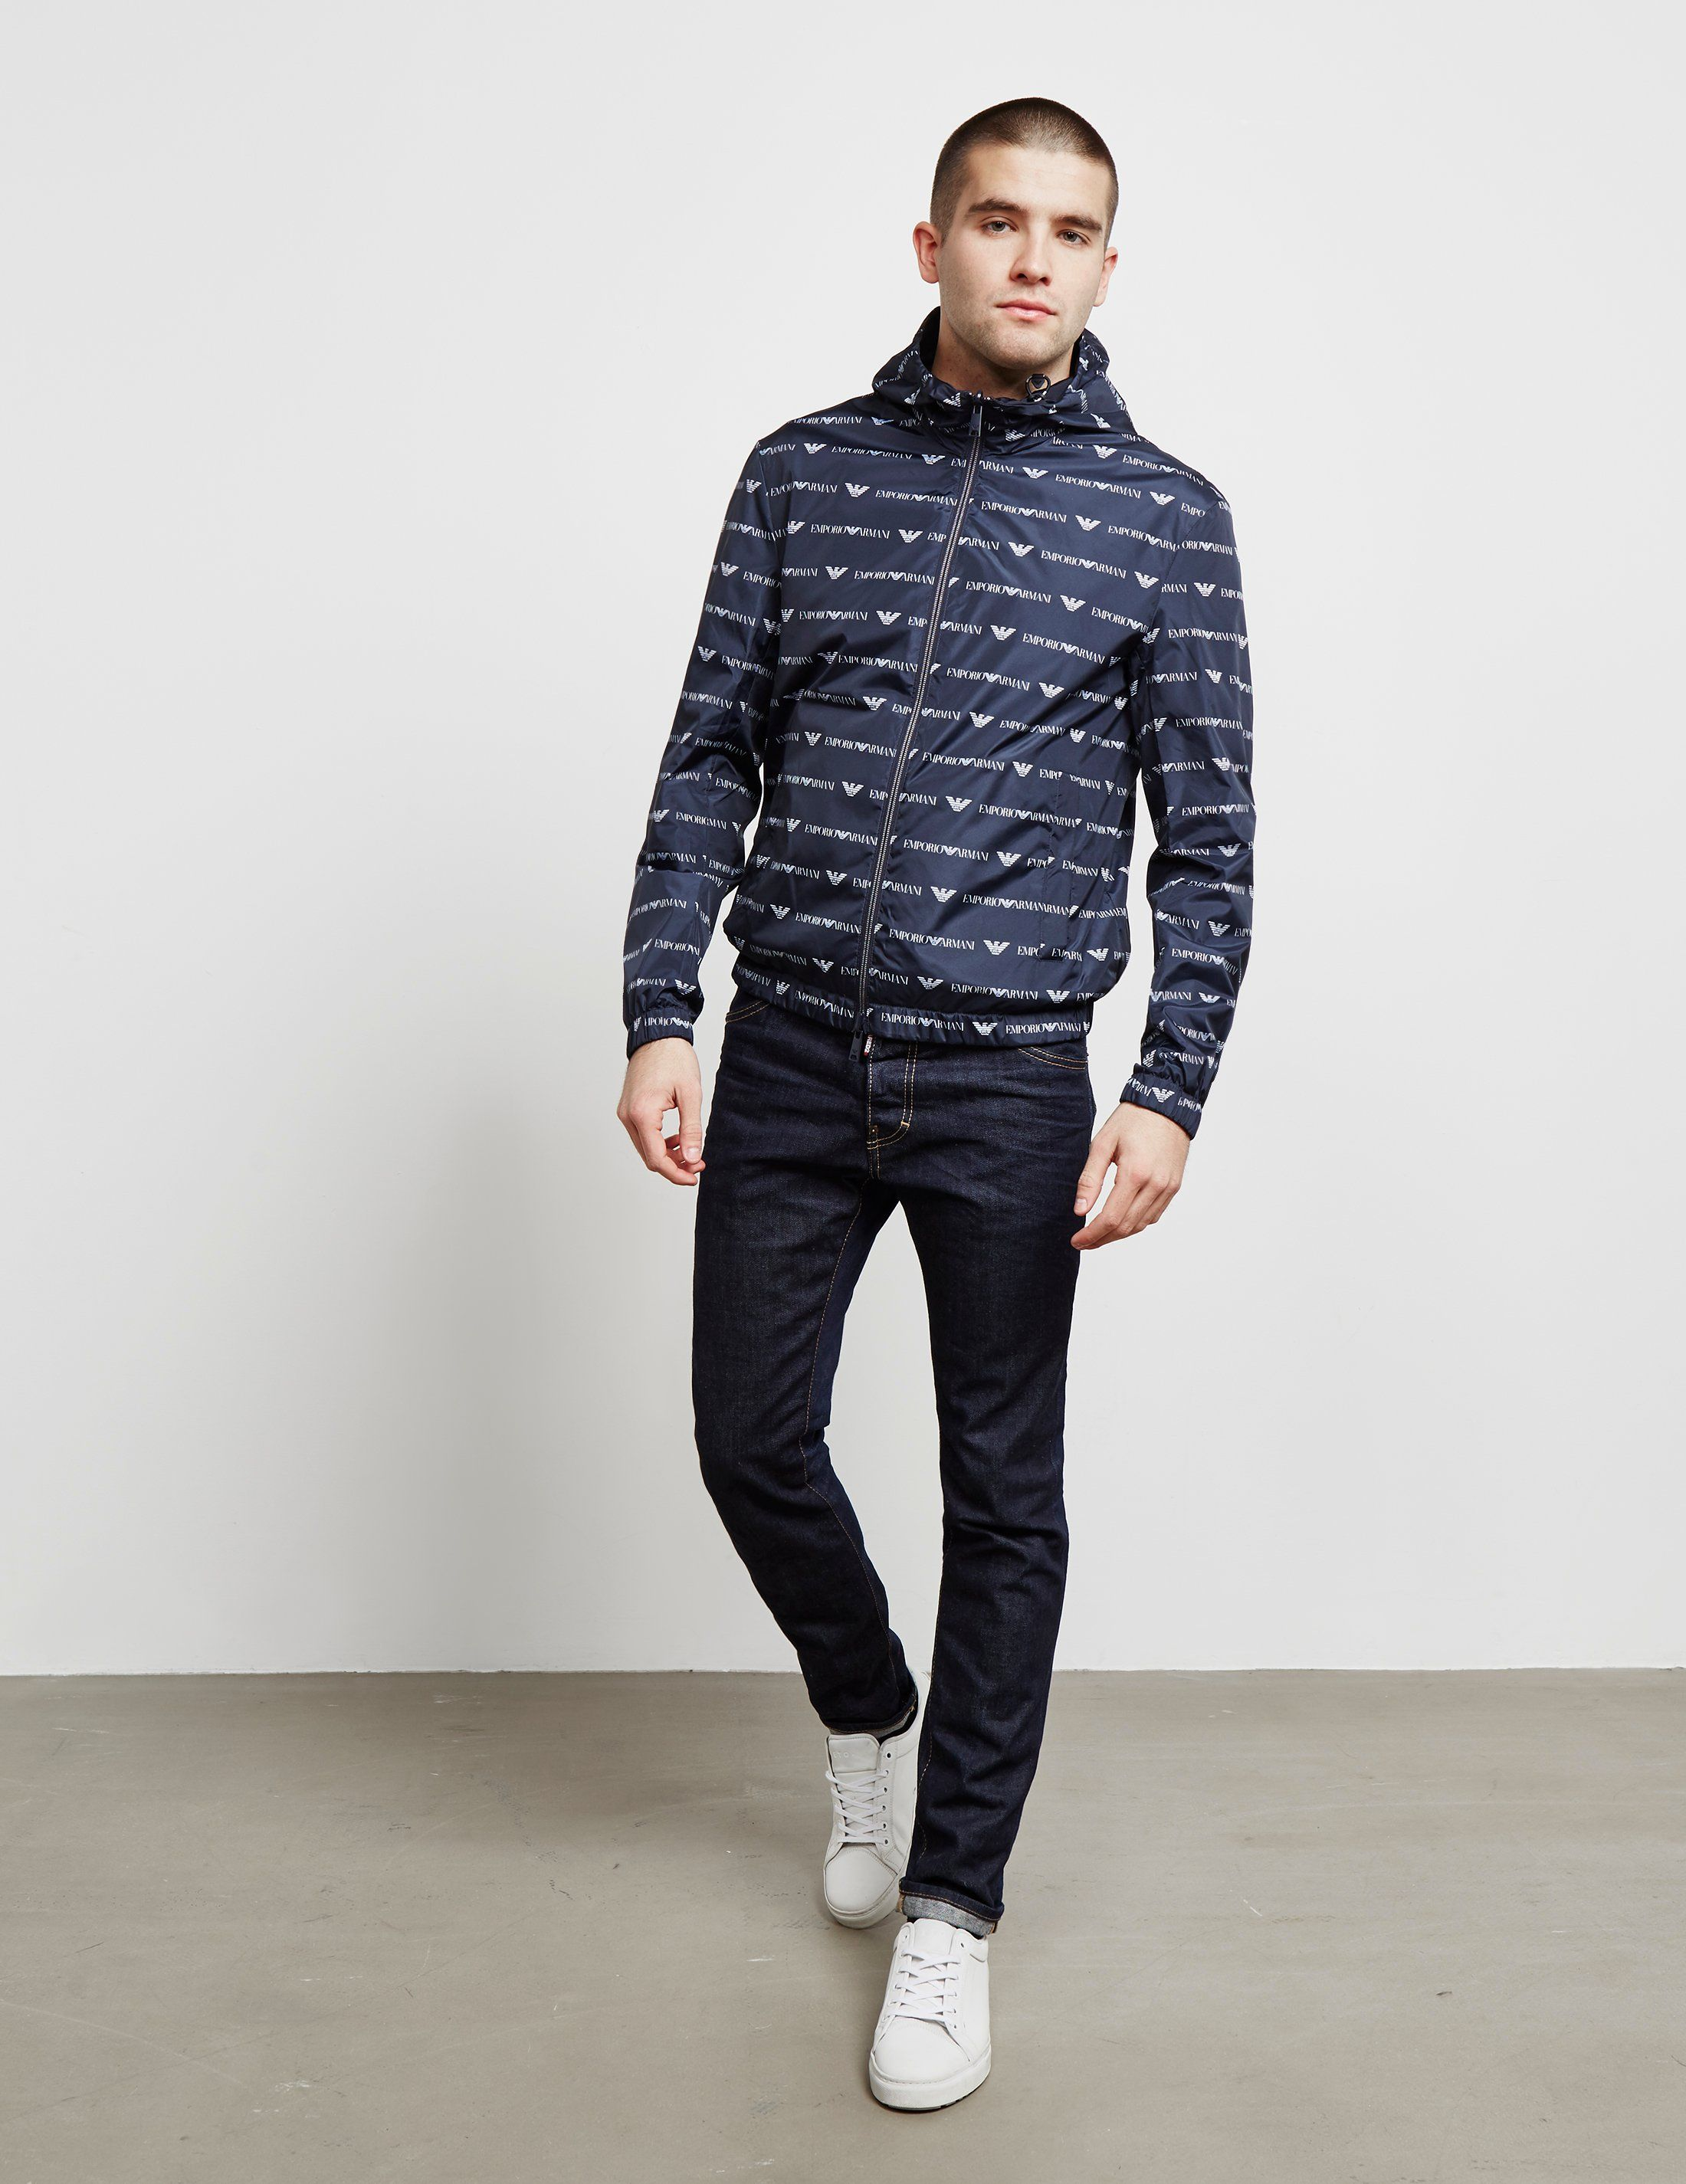 Emporio Armani All Over Print Reversible Jacket